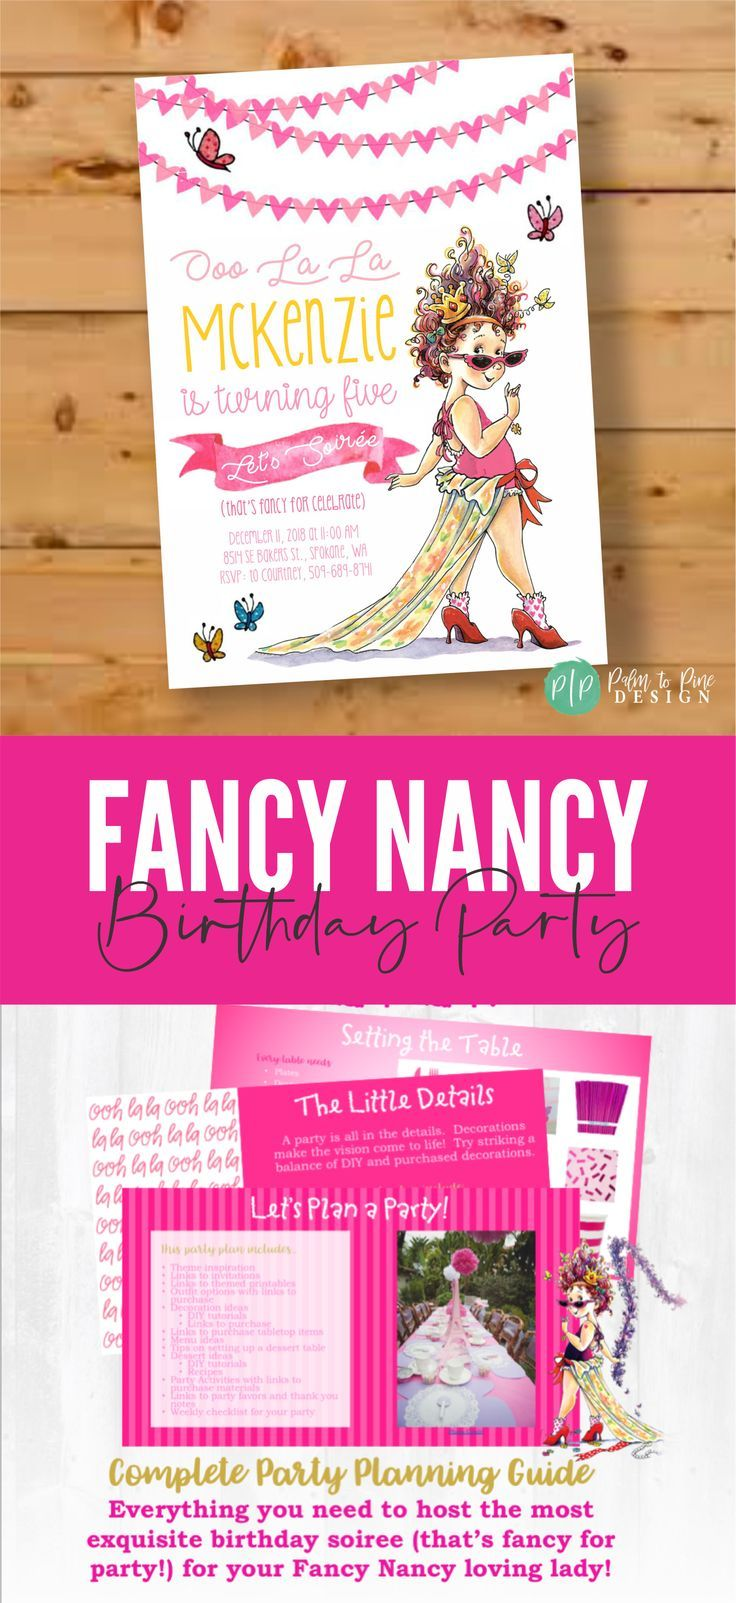 hight resolution of the cute heart banner butterflies and fancy nancy clipart from the book series is perfect